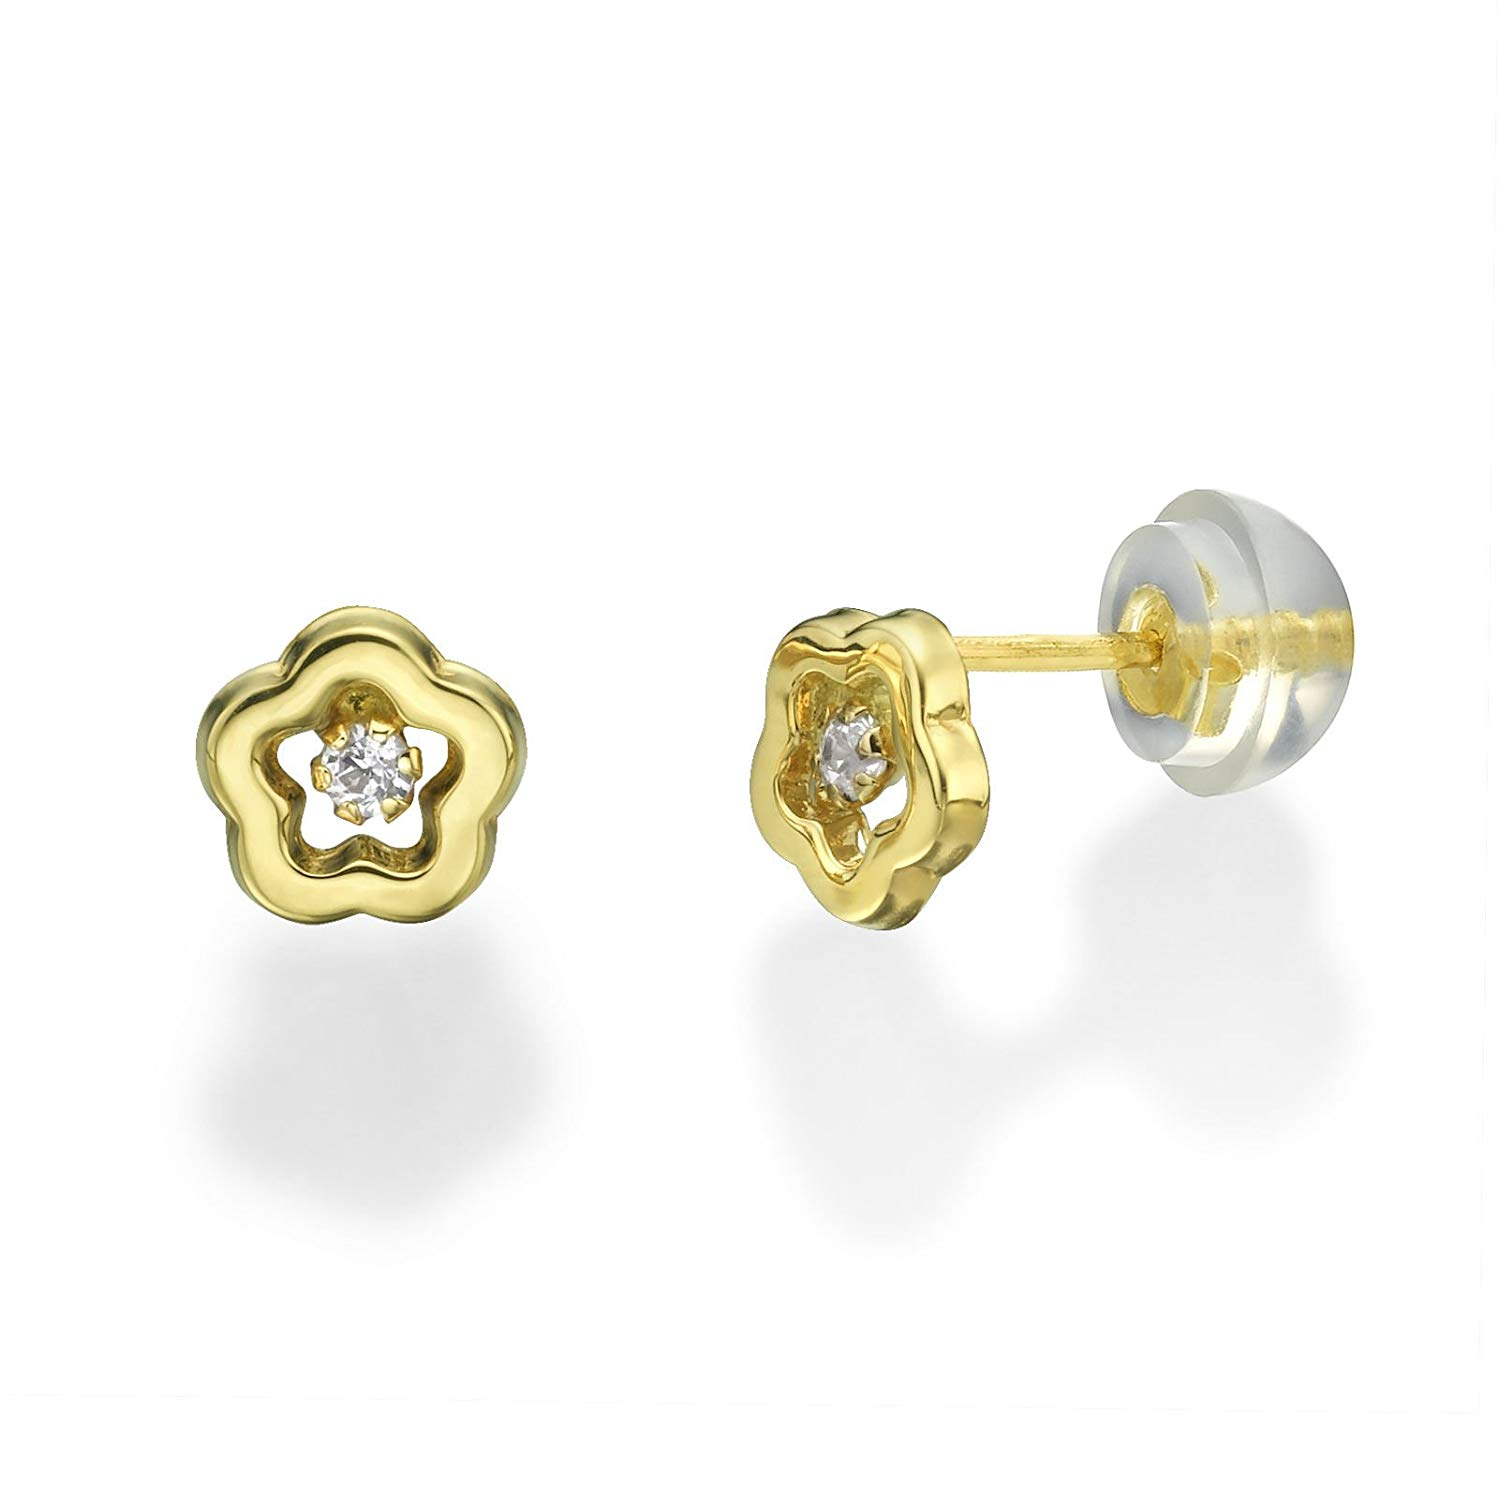 698ce4edf Get Quotations · 14K Yellow Gold Flower with Round cubic zirconia Screwback Stud  Earrings Children Jewelry Gift